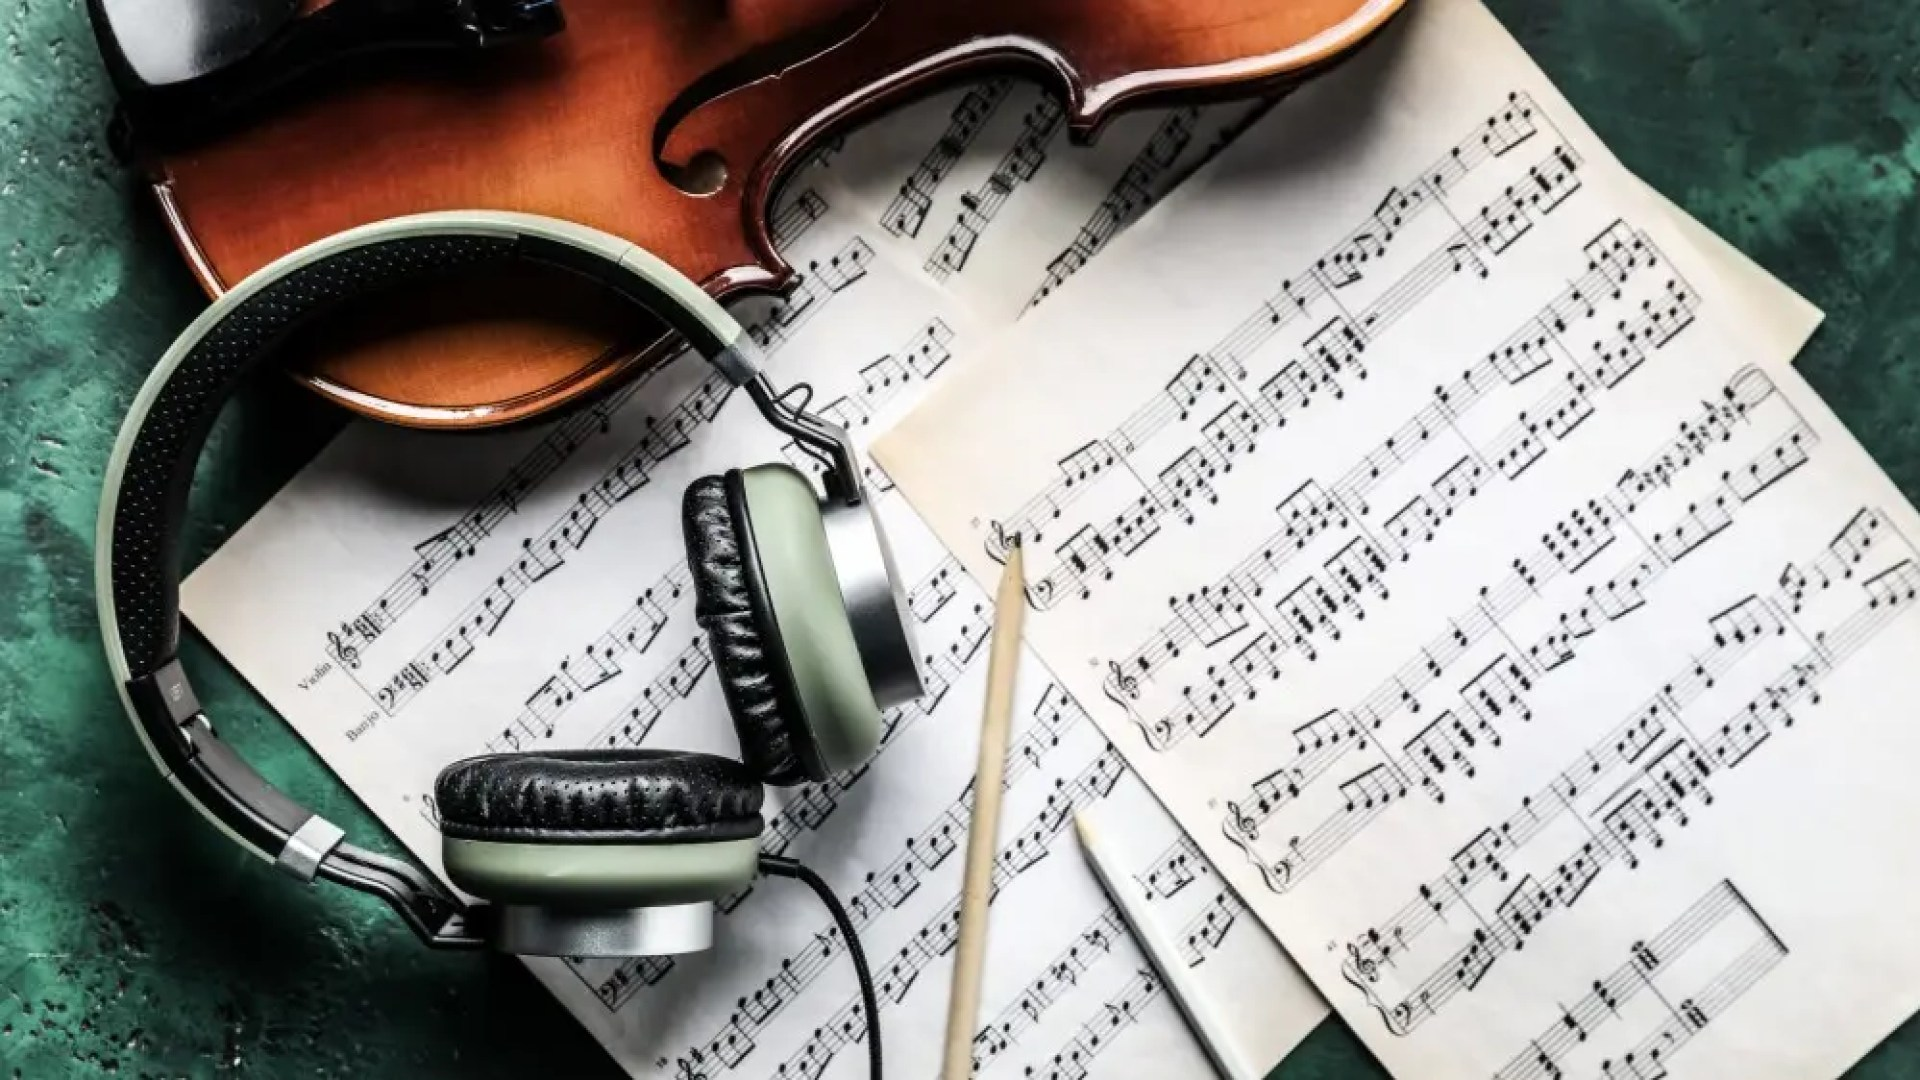 violin, headphones, and sheet music on table